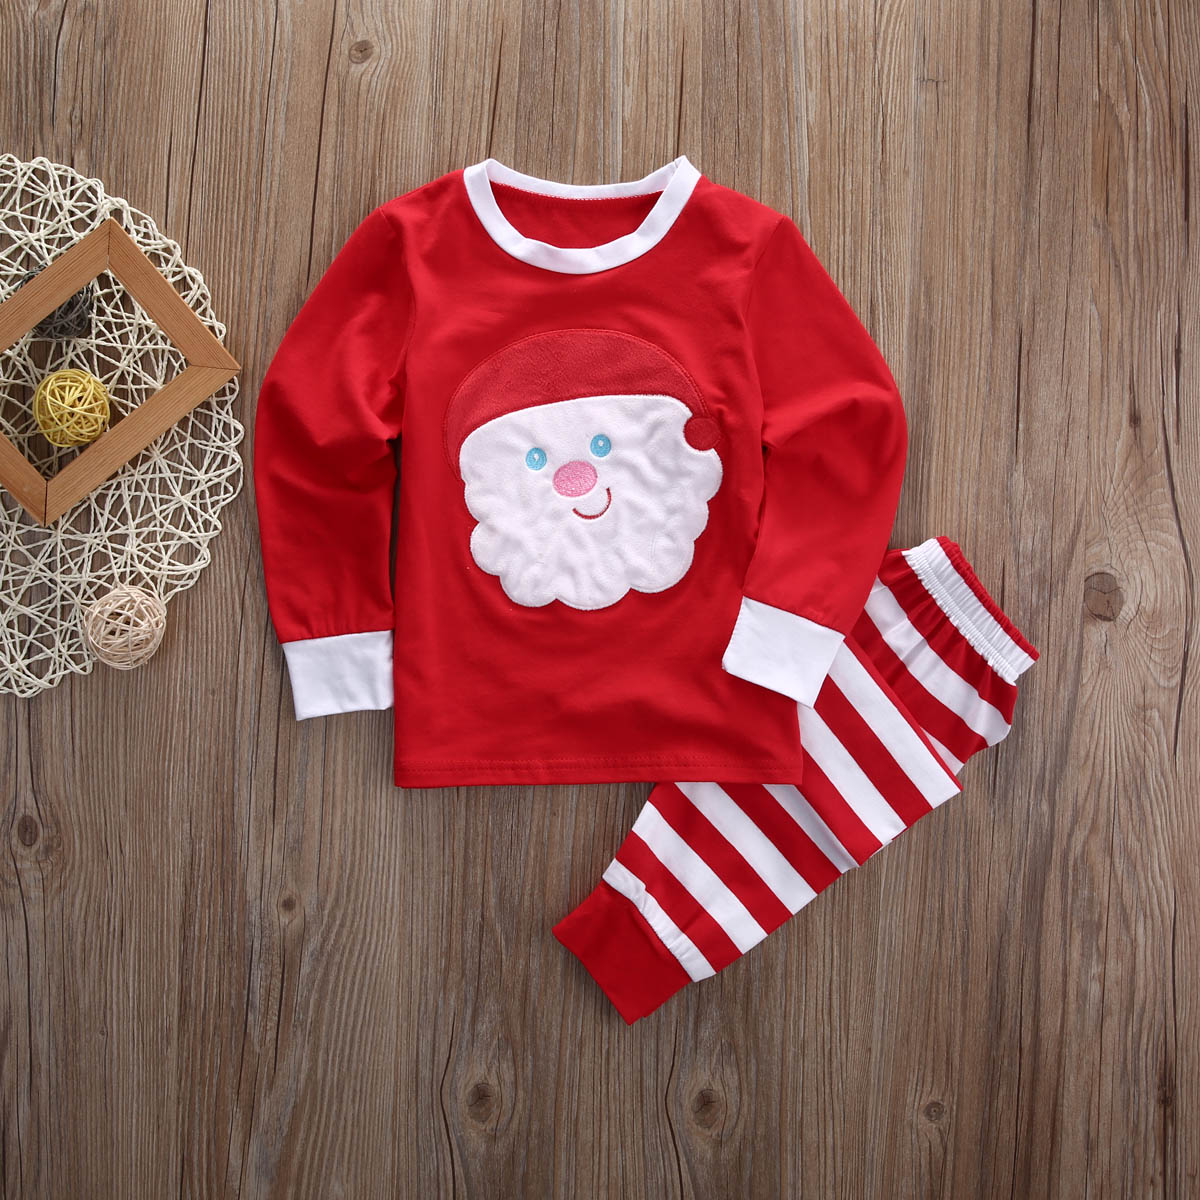 cc2a62cac Baby Kids Xmas Pjs Clothing Set Kid Babies Christmas Santa Claus ...